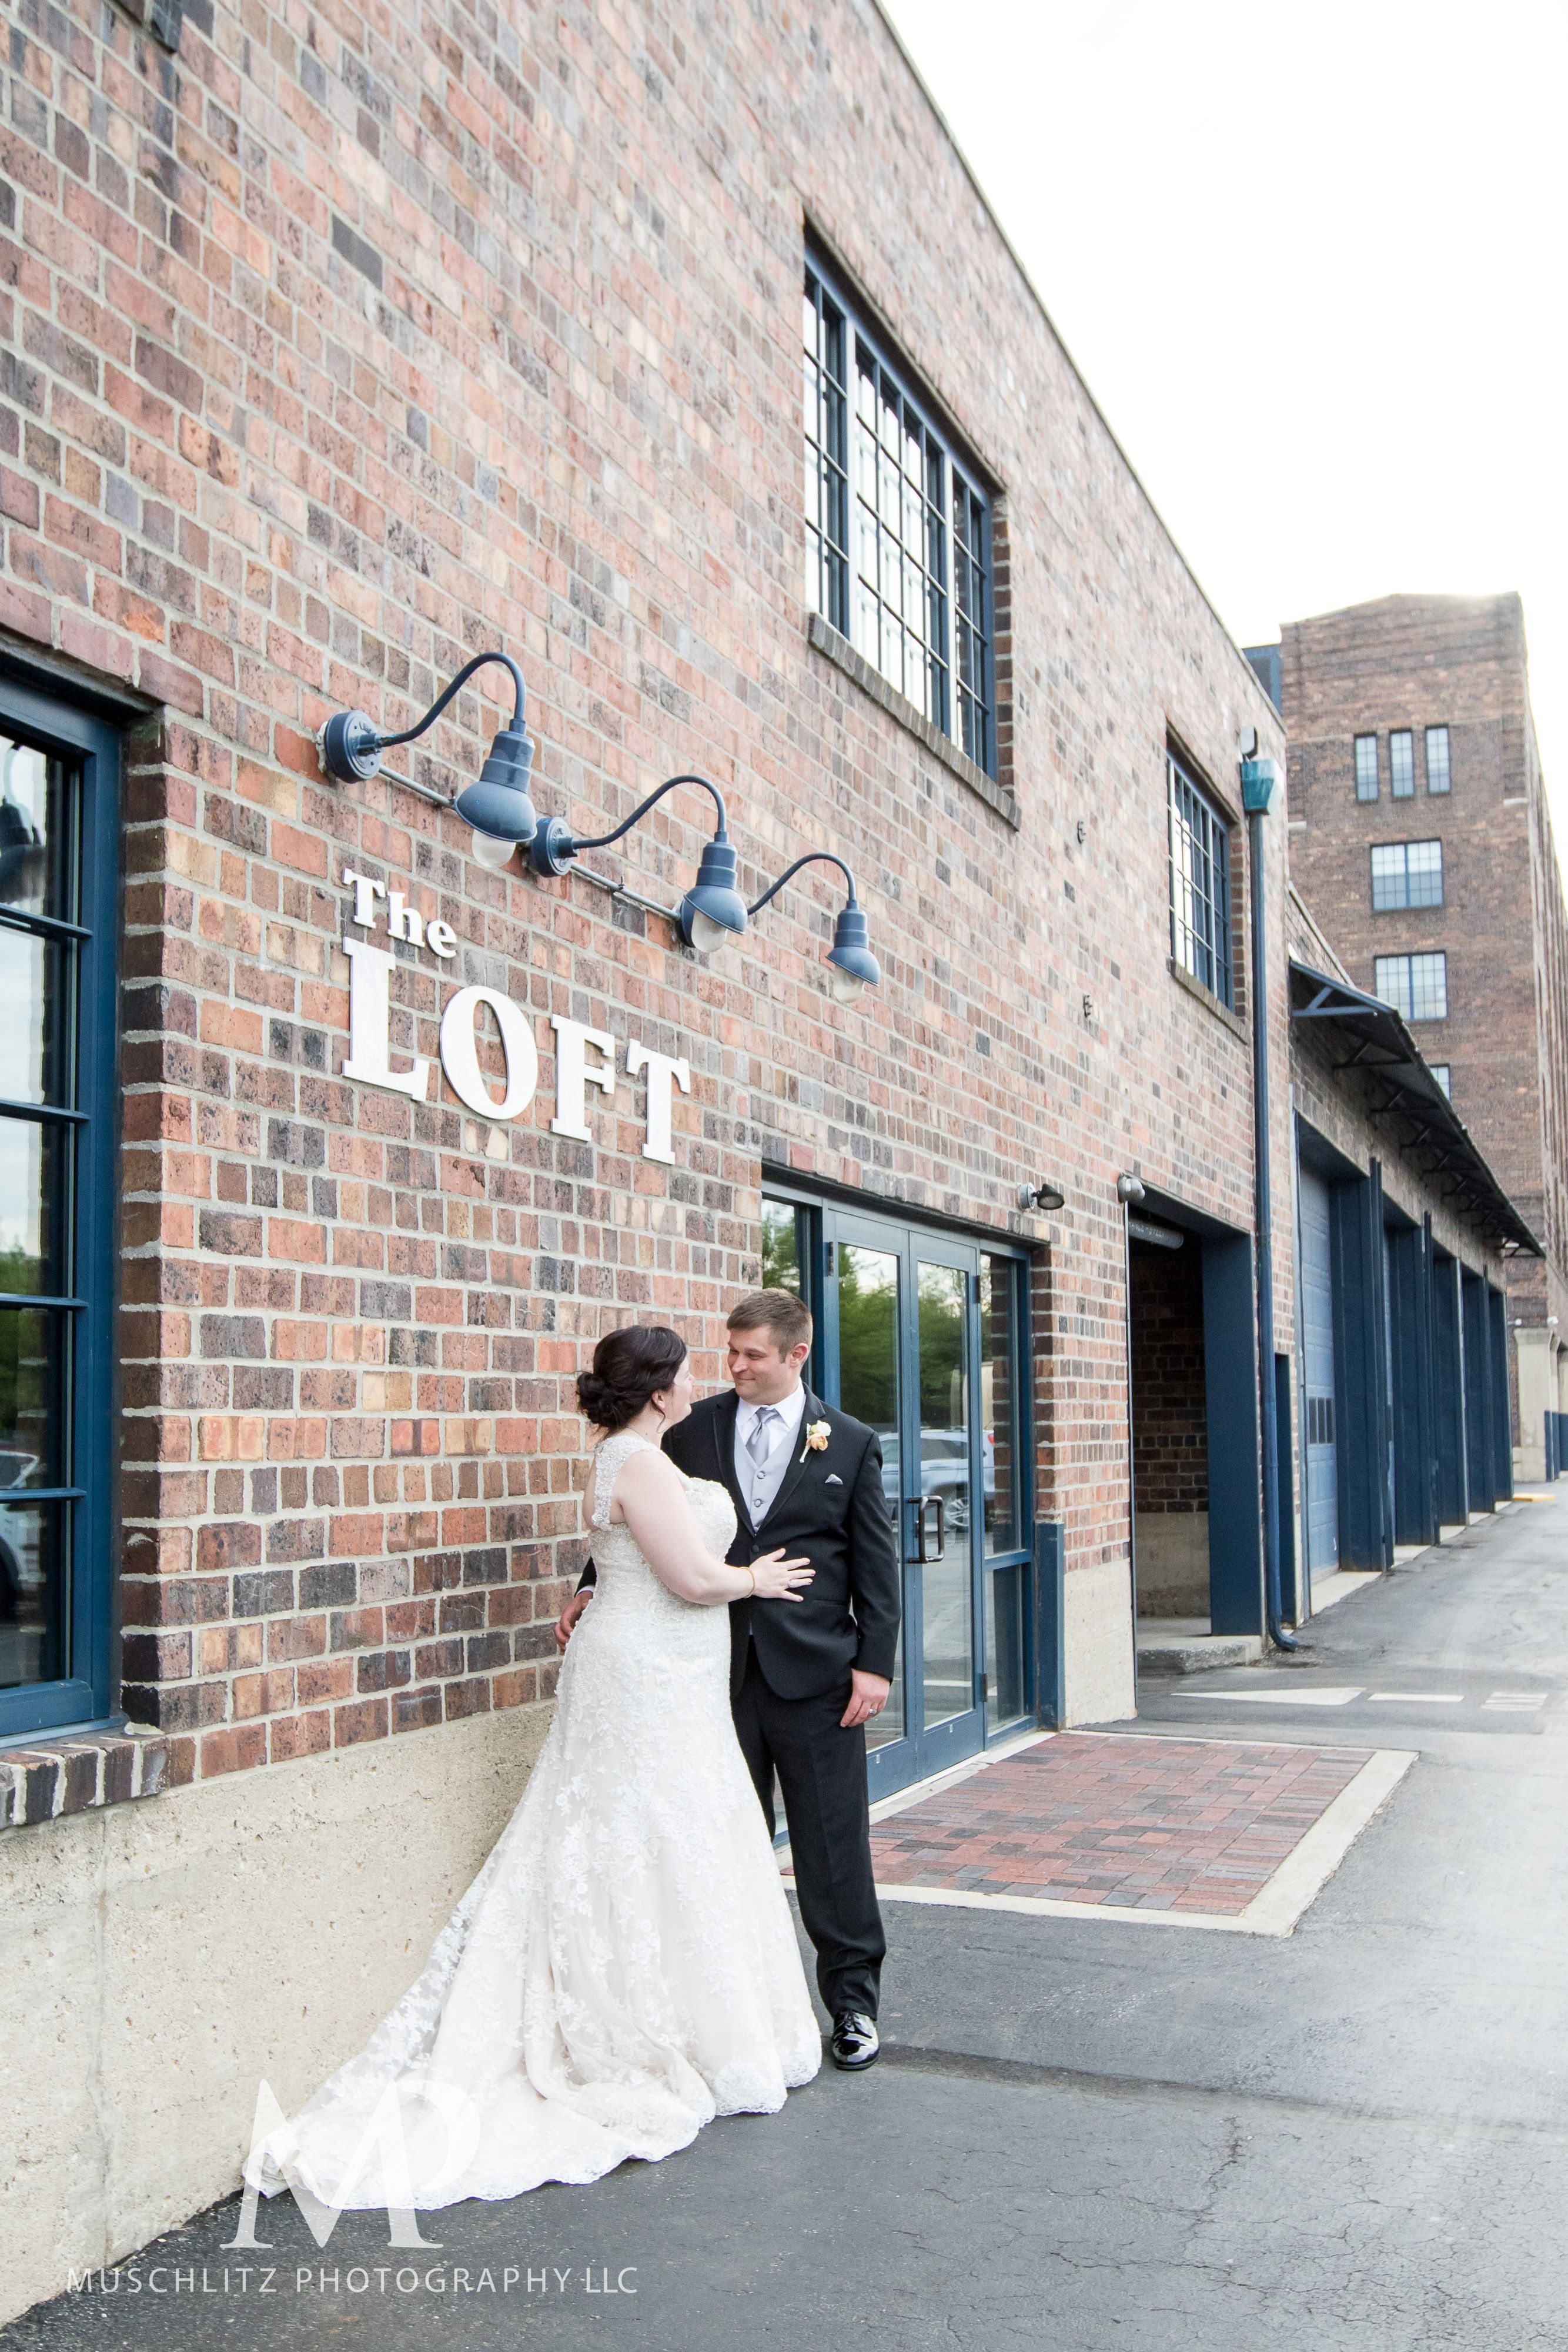 Talk About A Beautiful Wedding Loved Kelly And Scott S Spring Wedding At Dock580 Special Thank You To Their Vendo Wedding Ohio Wedding Wedding Party Photos